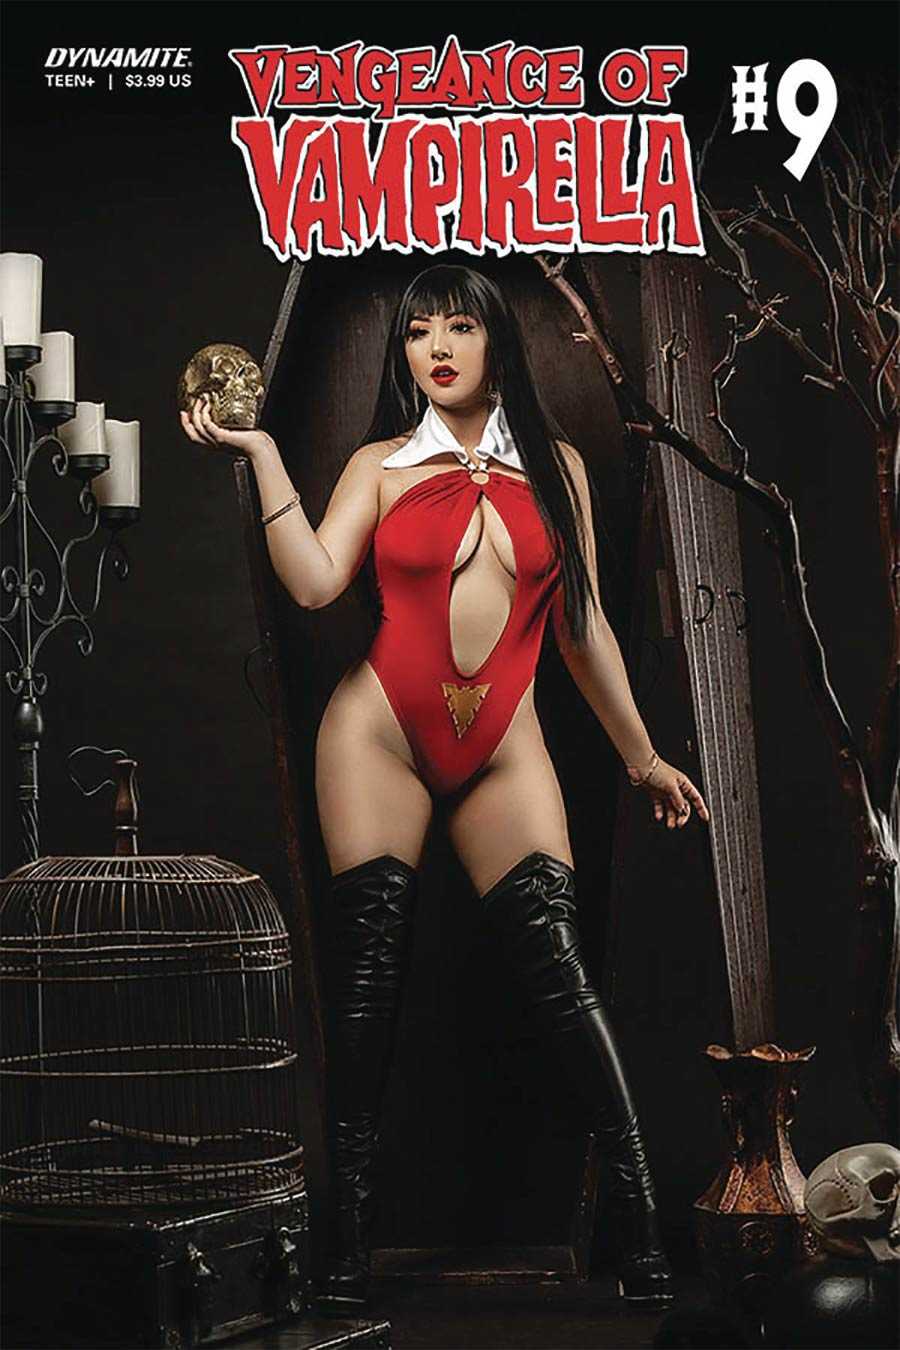 Vengeance Of Vampirella Vol 2 #9 Cover D Variant Marissa Ramirez Cosplay Photo Cover